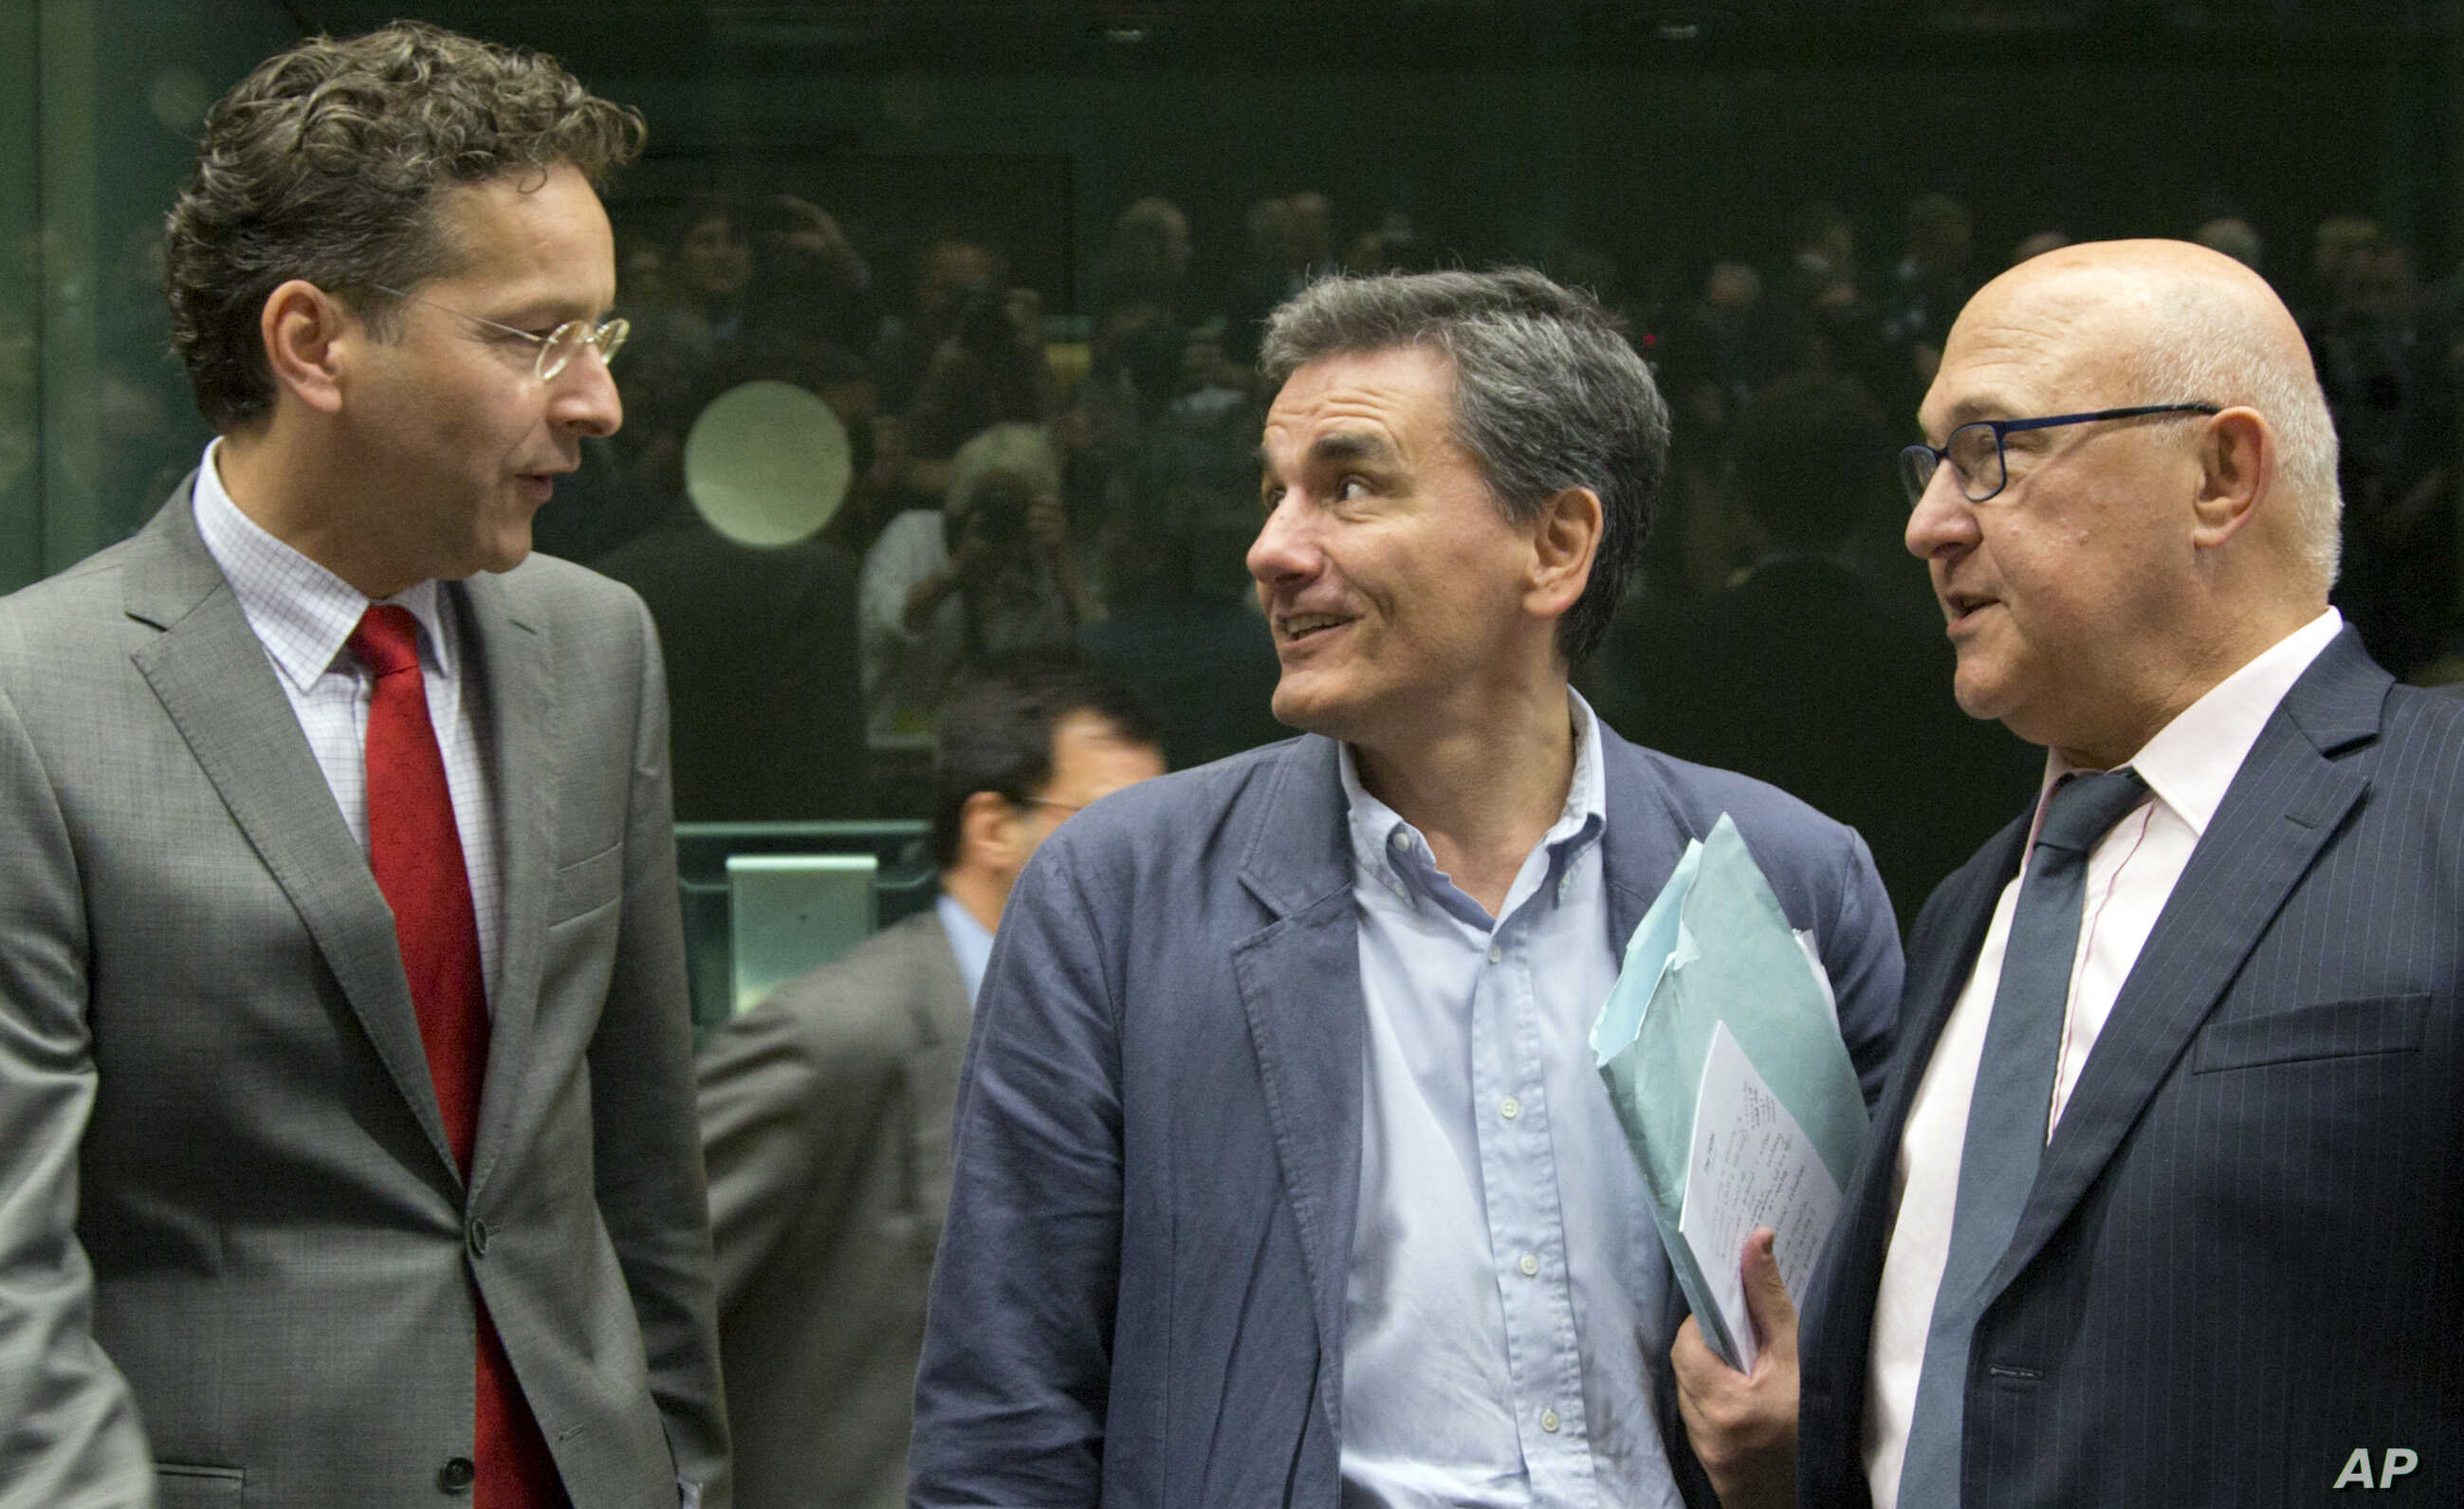 FILE - Greek Finance Minister Euclid Tsakalotos, center, speaks with Dutch Finance Minister Jeroen Dijsselbloem, left, and French Finance Minister Michel Sapin during a meeting of eurozone finance ministers in Brussels, July 7, 2015.